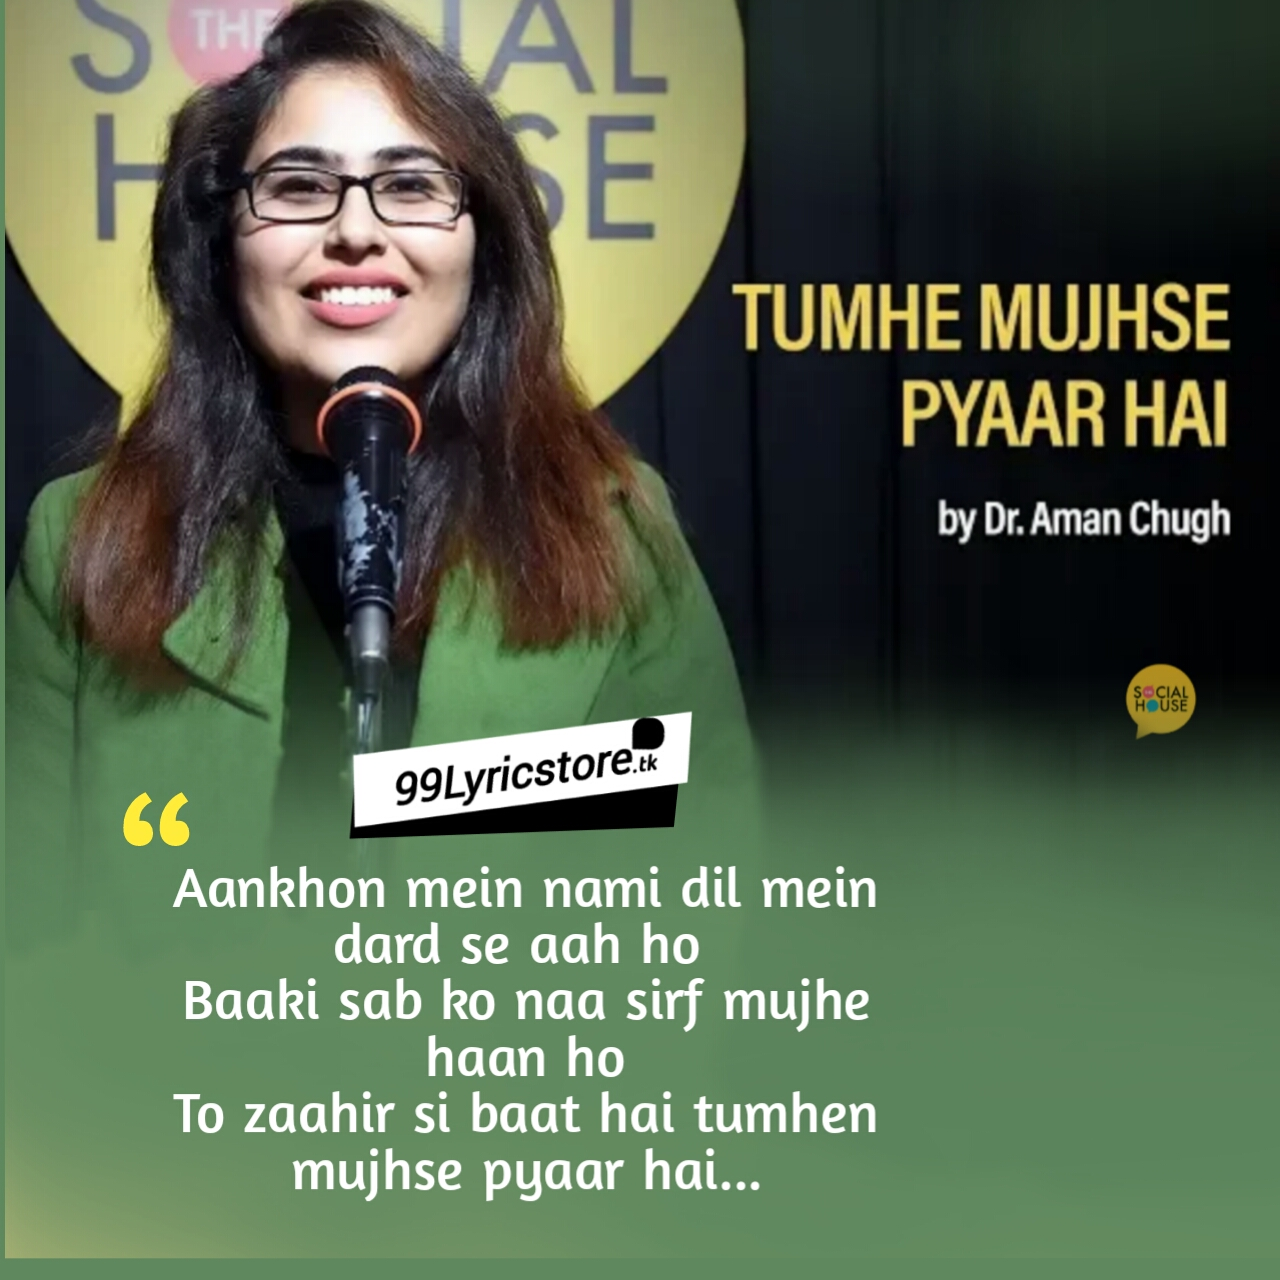 Tumhe Mujhse Pyaar Hai by Dr. Aman Chugh | Love Poem | The Social House Poetry, The social house poetry in Hindi, love poetry, love poem, Kavita, Dr. Aman Chugh Poetry, Dr. Aman Chugh poem, Two lines poem, love Shayari, Aur khwaabon mein har roz mujhse mulaakaat ho  To zaahir si baat hai tumhen mujhse pyaar hai...